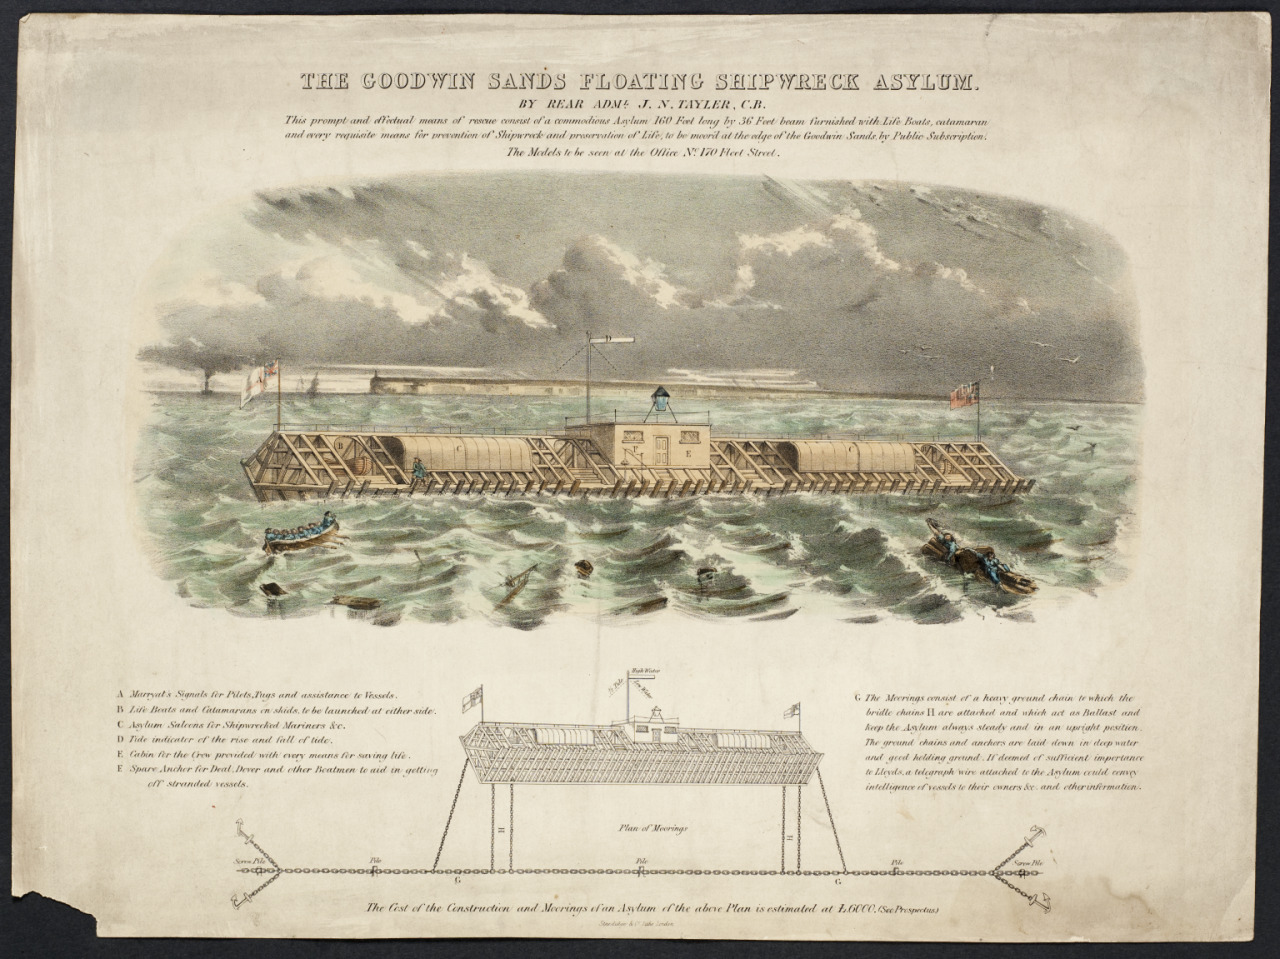 Lithograph of The 'Goodwin Sands Floating Shipwreck Asylum', England, 1829-1851  This lithograph is by Rear Admiral J. N. Tayler. It shows a proposal for a moored ship to save people from shipwrecks on the Goodwin Sands. This was a notoriously treacherous stretch of sea on the east coast of Kent. Shifting sands make building lighthouses impossible and the area was prone to shipwrecks. The word 'asylum' means a sanctuary and a shelter from danger or hardship. This possibly guided Rear Admiral Taylor when naming his design. However, he may also have been satirising the number of 'mental asylums' being built during this period. This lithograph comprises a vignette of the moored asylum in use, plus a diagram of the vessel with explanatory captions. It was published by Standidge and Company in London; Science Museum, London.